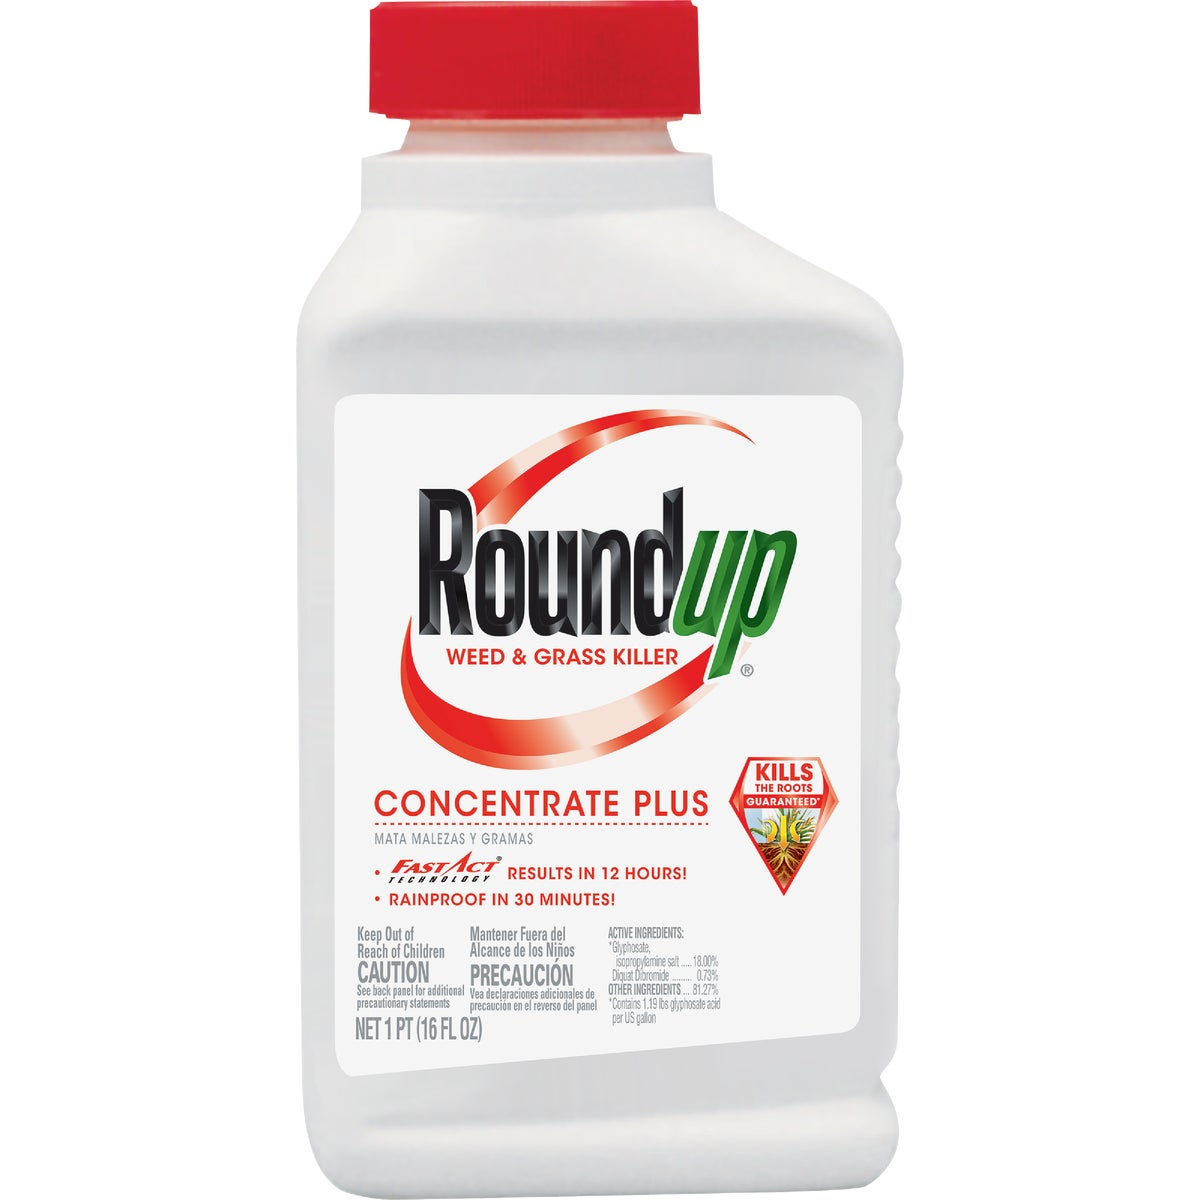 PT CONC PLUS ROUNDUP - 5005510 by Scotts Company